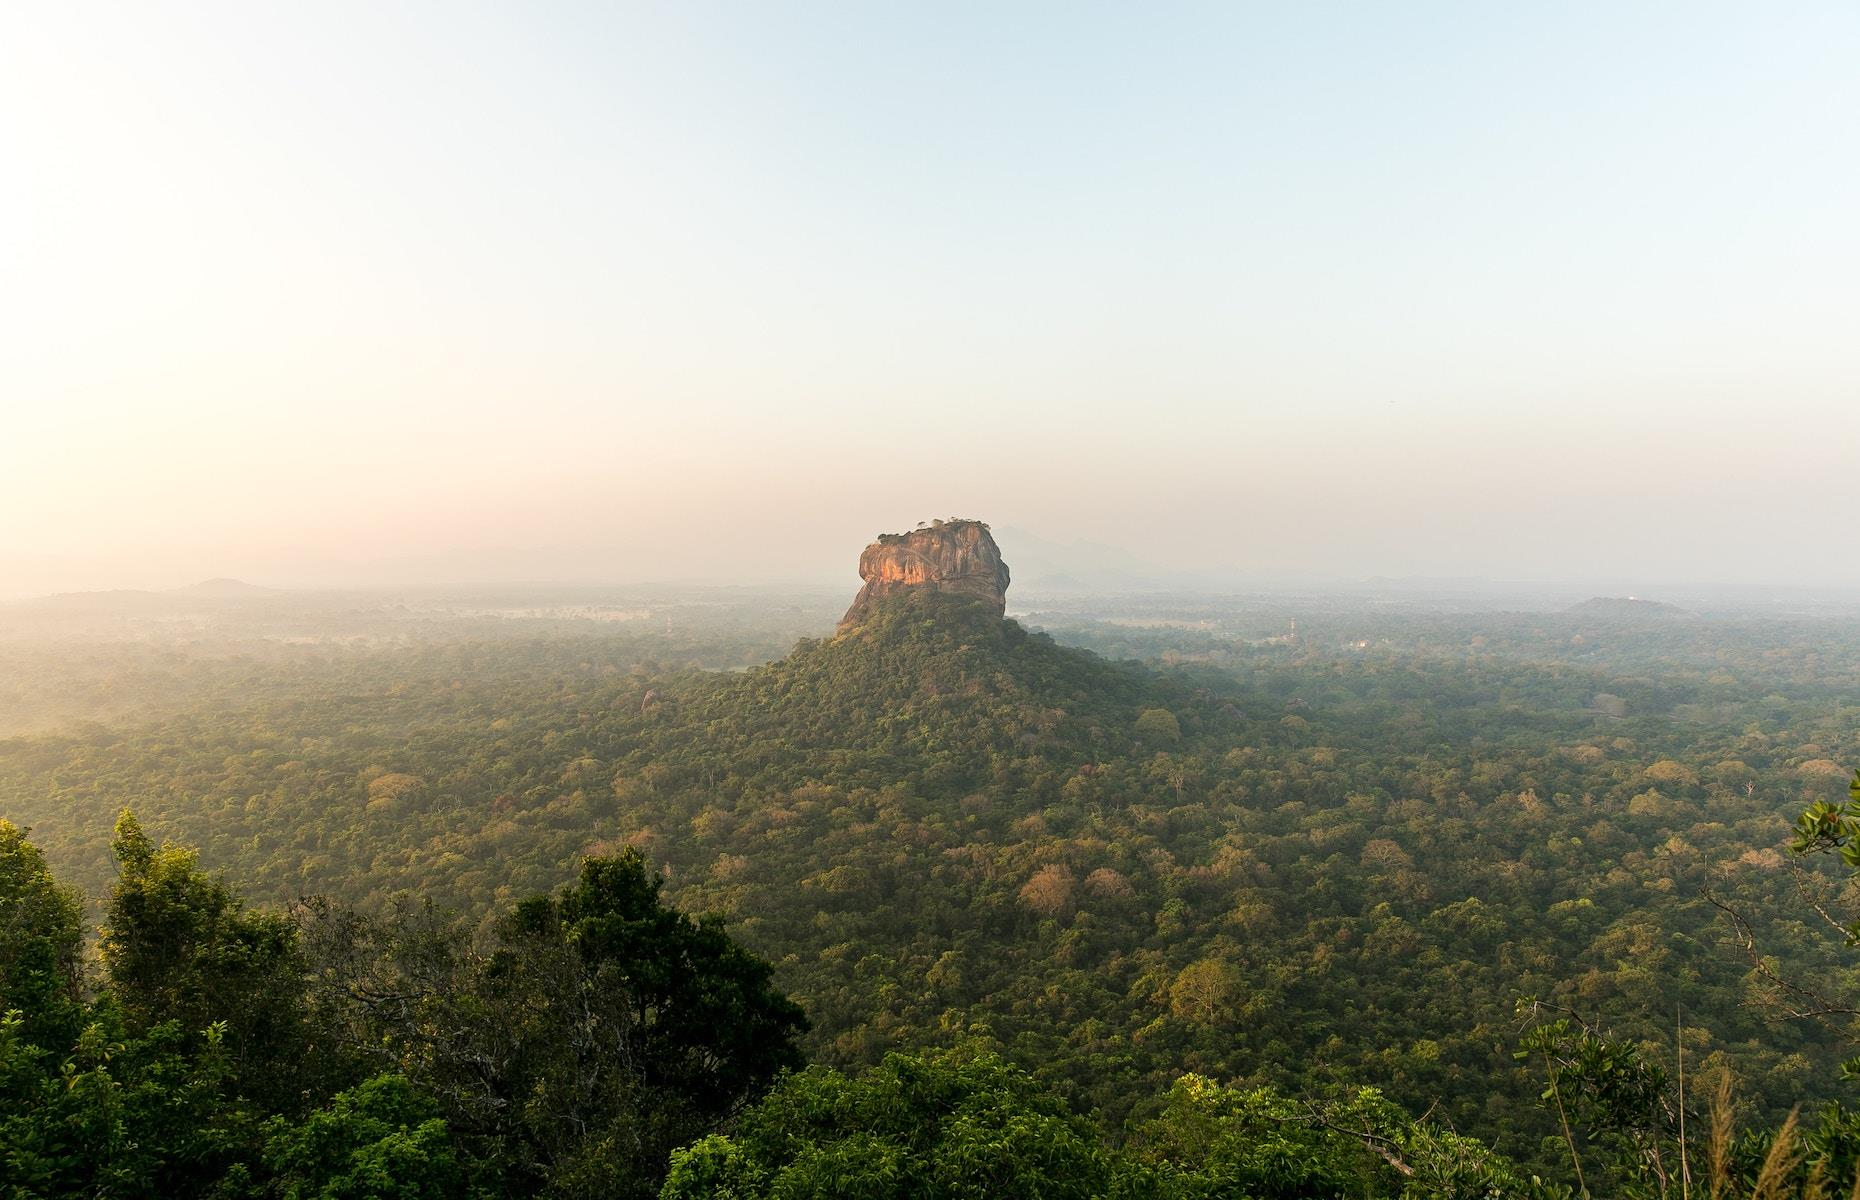 Slide 4 of 51: Jutting out of the plains and forests of northeast Sri Lanka, Sigiriya is one of the country's most spellbinding sights. It's hard to imagine the imposing 656-foot (200m) rock fortress lay forgotten by the outside world until British historians rediscovered it in the 19th century. Built by the king Kashyapa I in the 5th century AD, its name means lion's rock and the entrance is guarded by a pair of giant lion paws. With a mighty 1,200 steps to the top, the views across the pleasure gardens, jungle and beyond are entrancing. Discover the world's most beautiful ancient cities here.